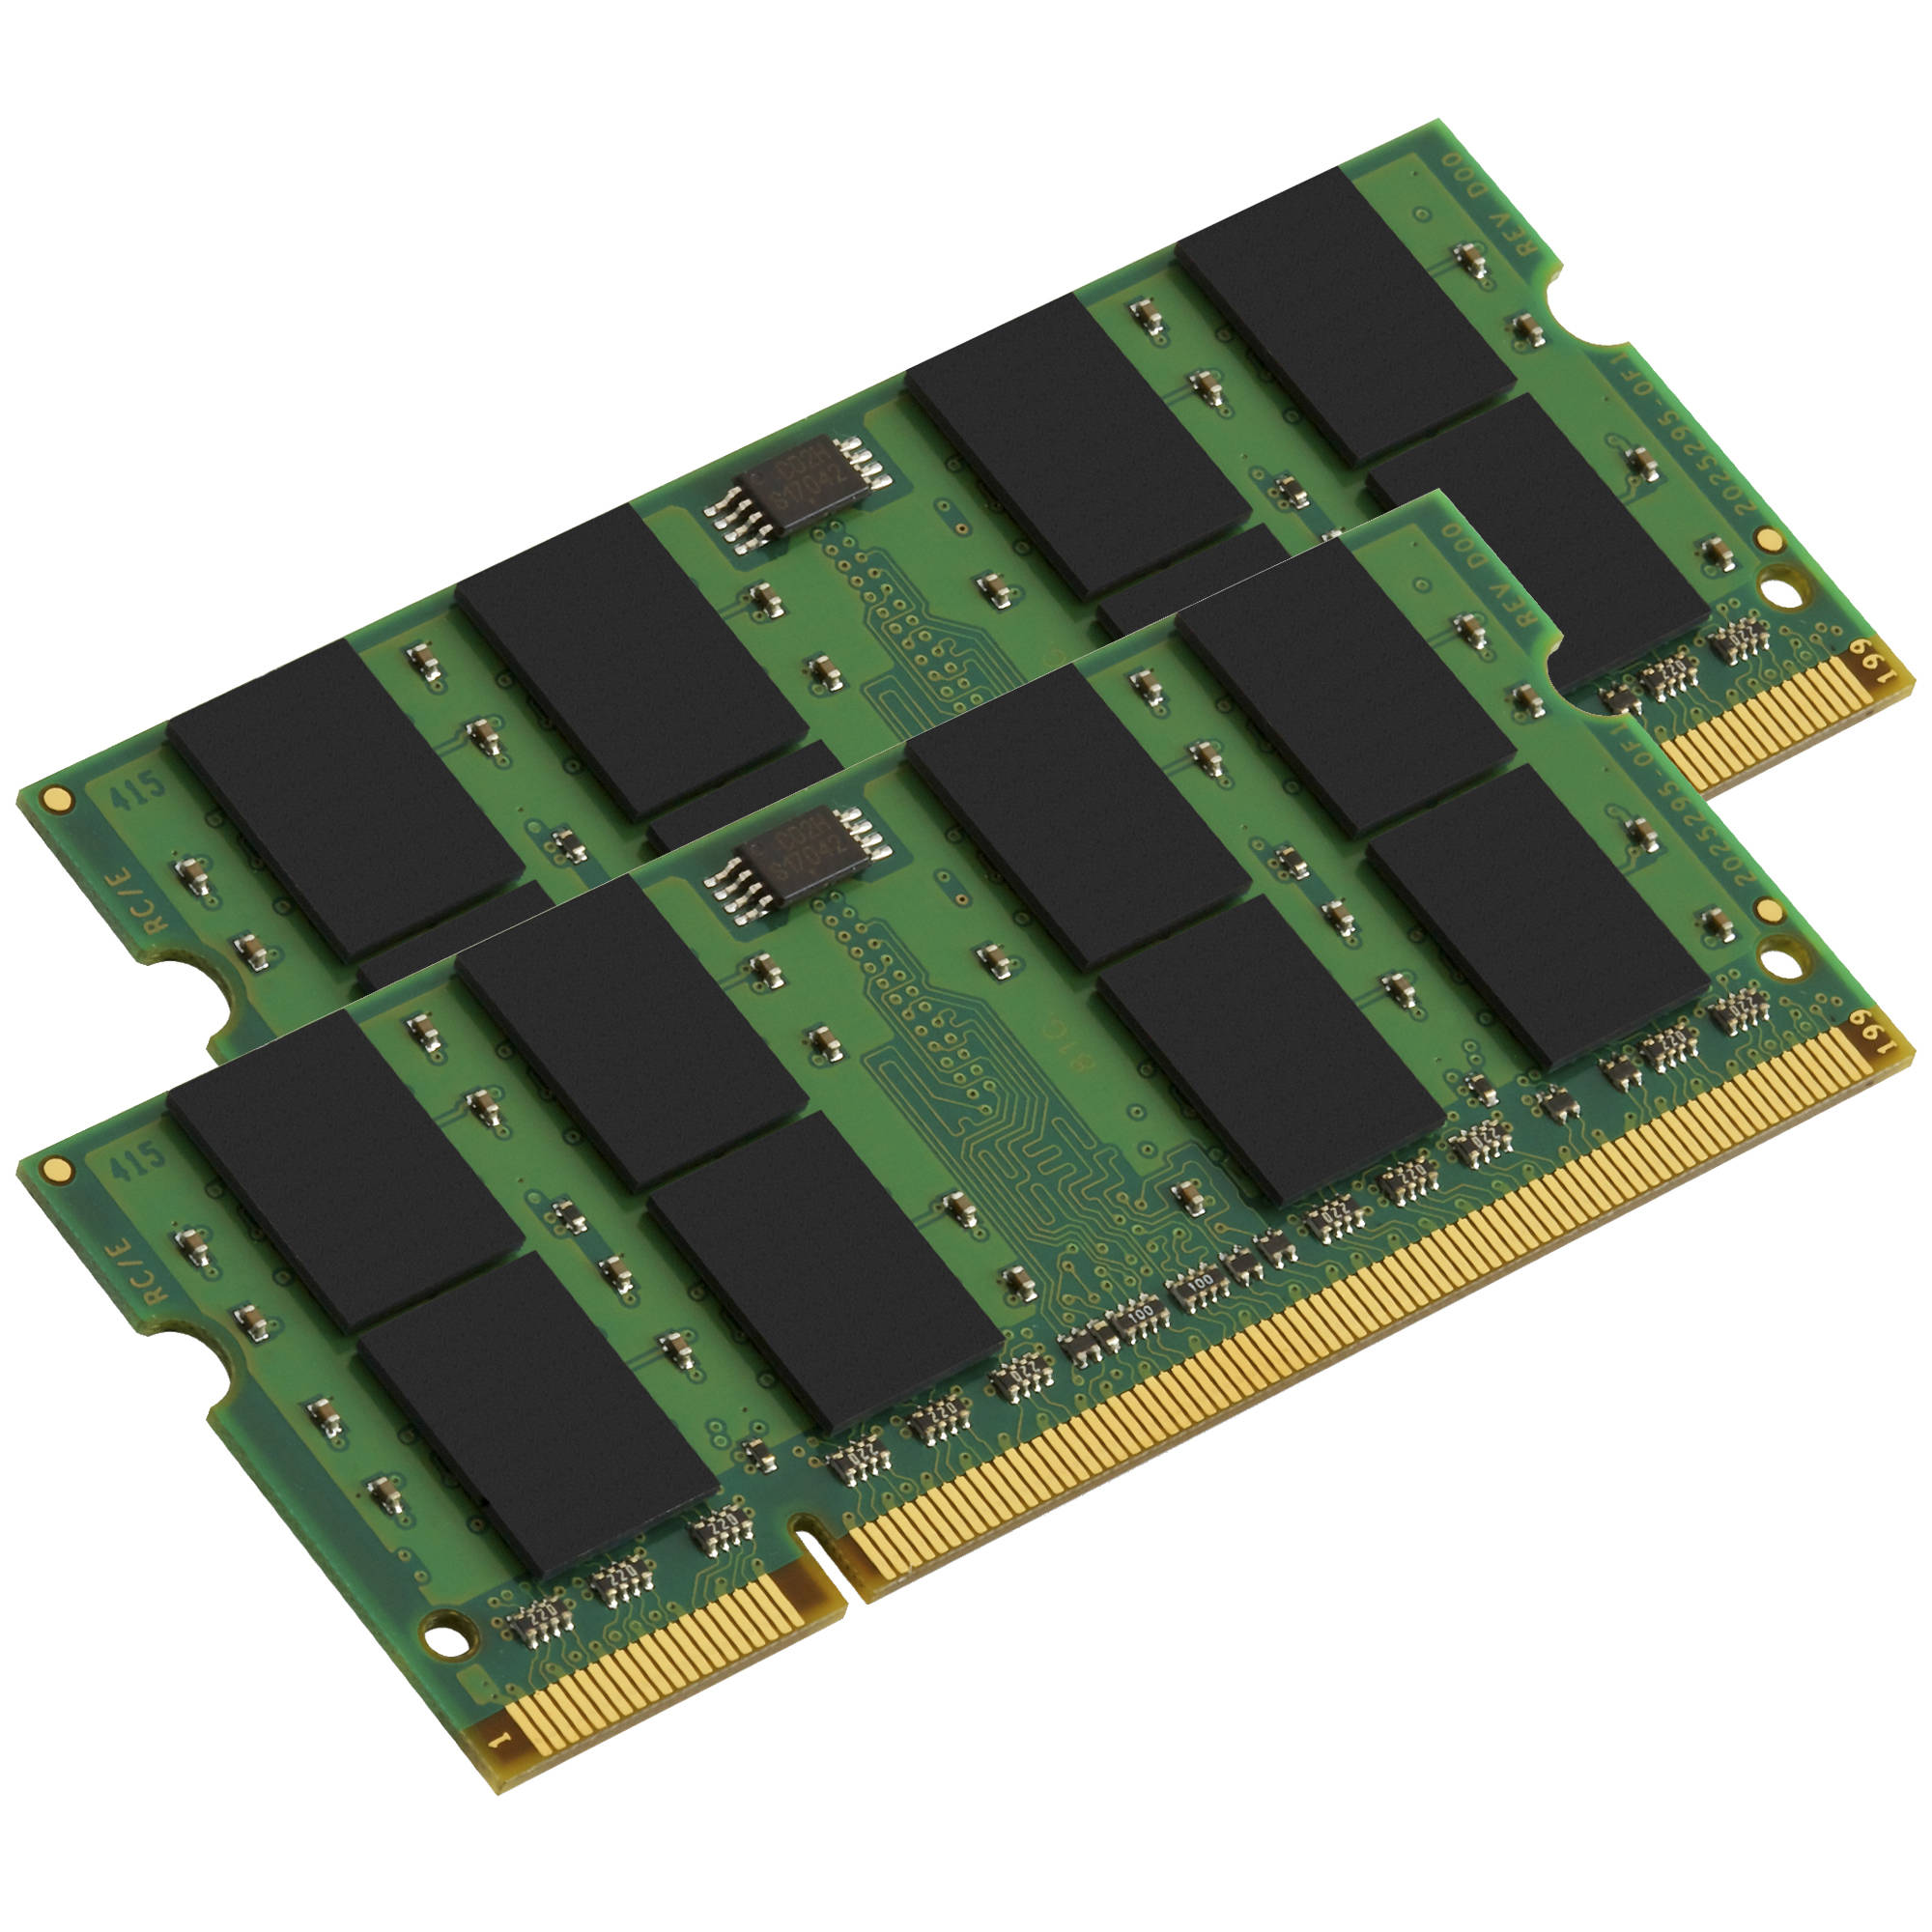 Kingston 2gb Ddr2 800 Mhz So Dimm Memory Kit Kta Mb800k2 2g Bh Memori Pc 6400 2 X 1gb Mac